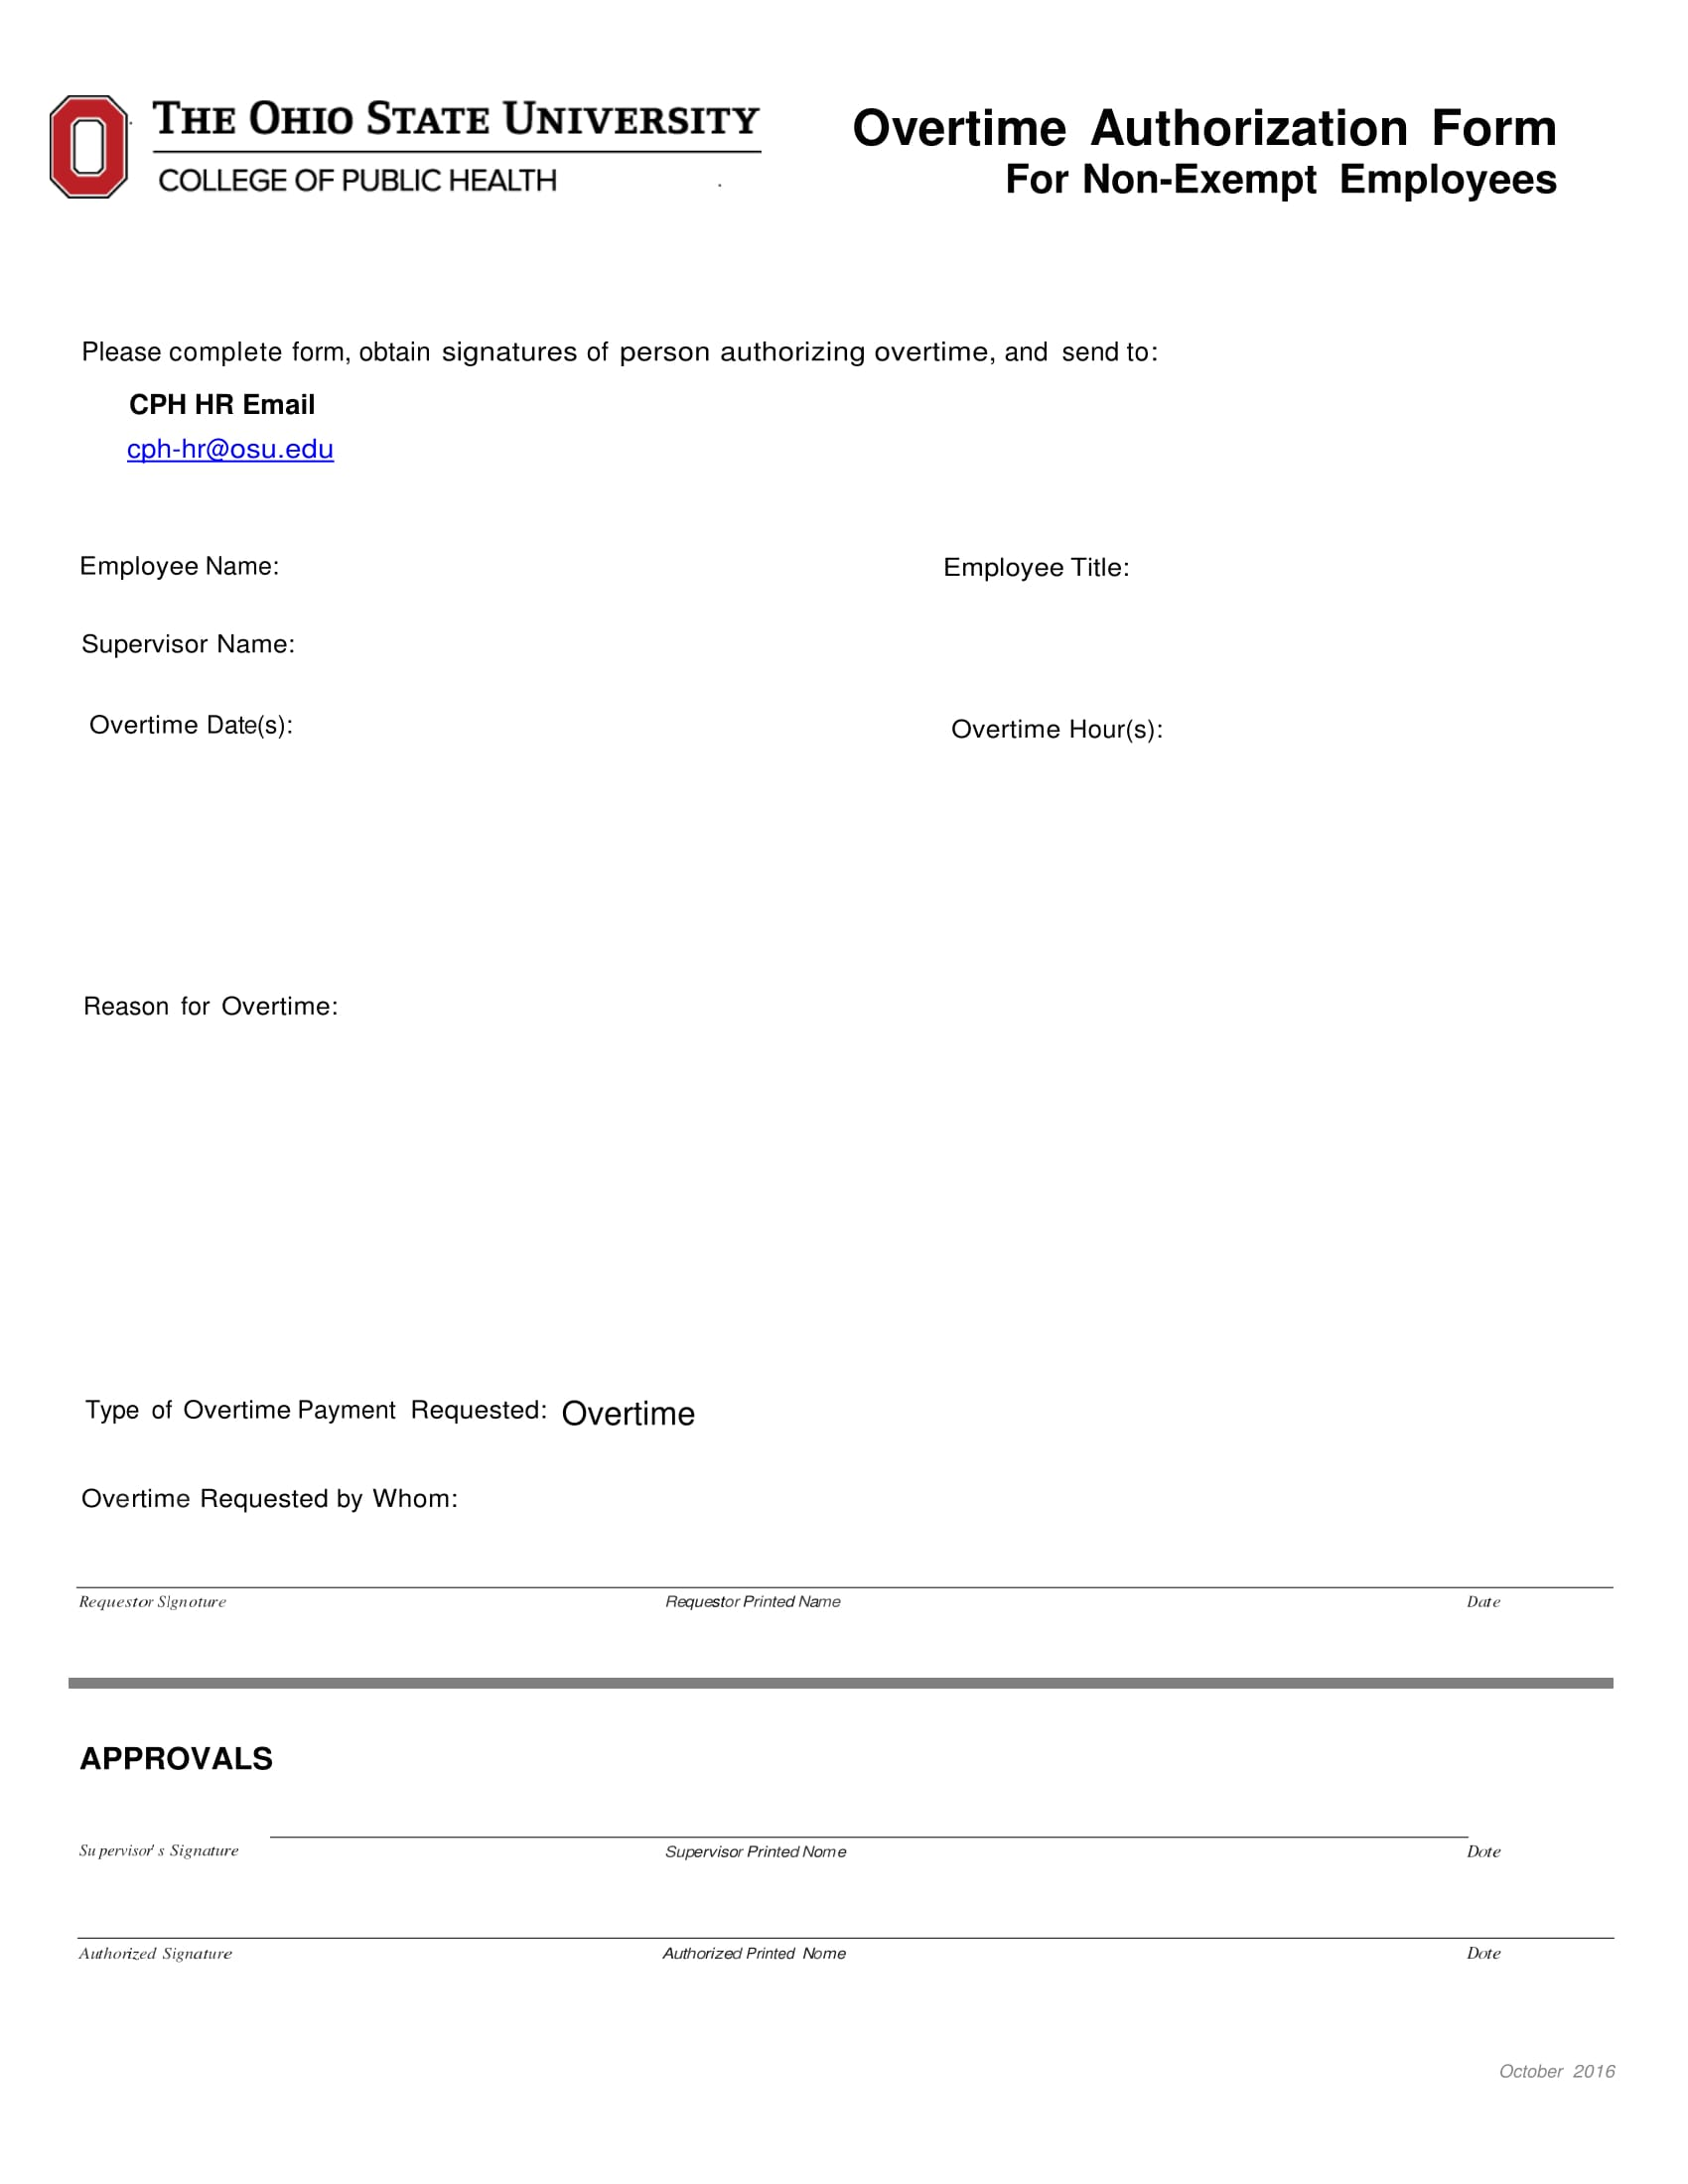 non exempt employees overtime authorization form 1